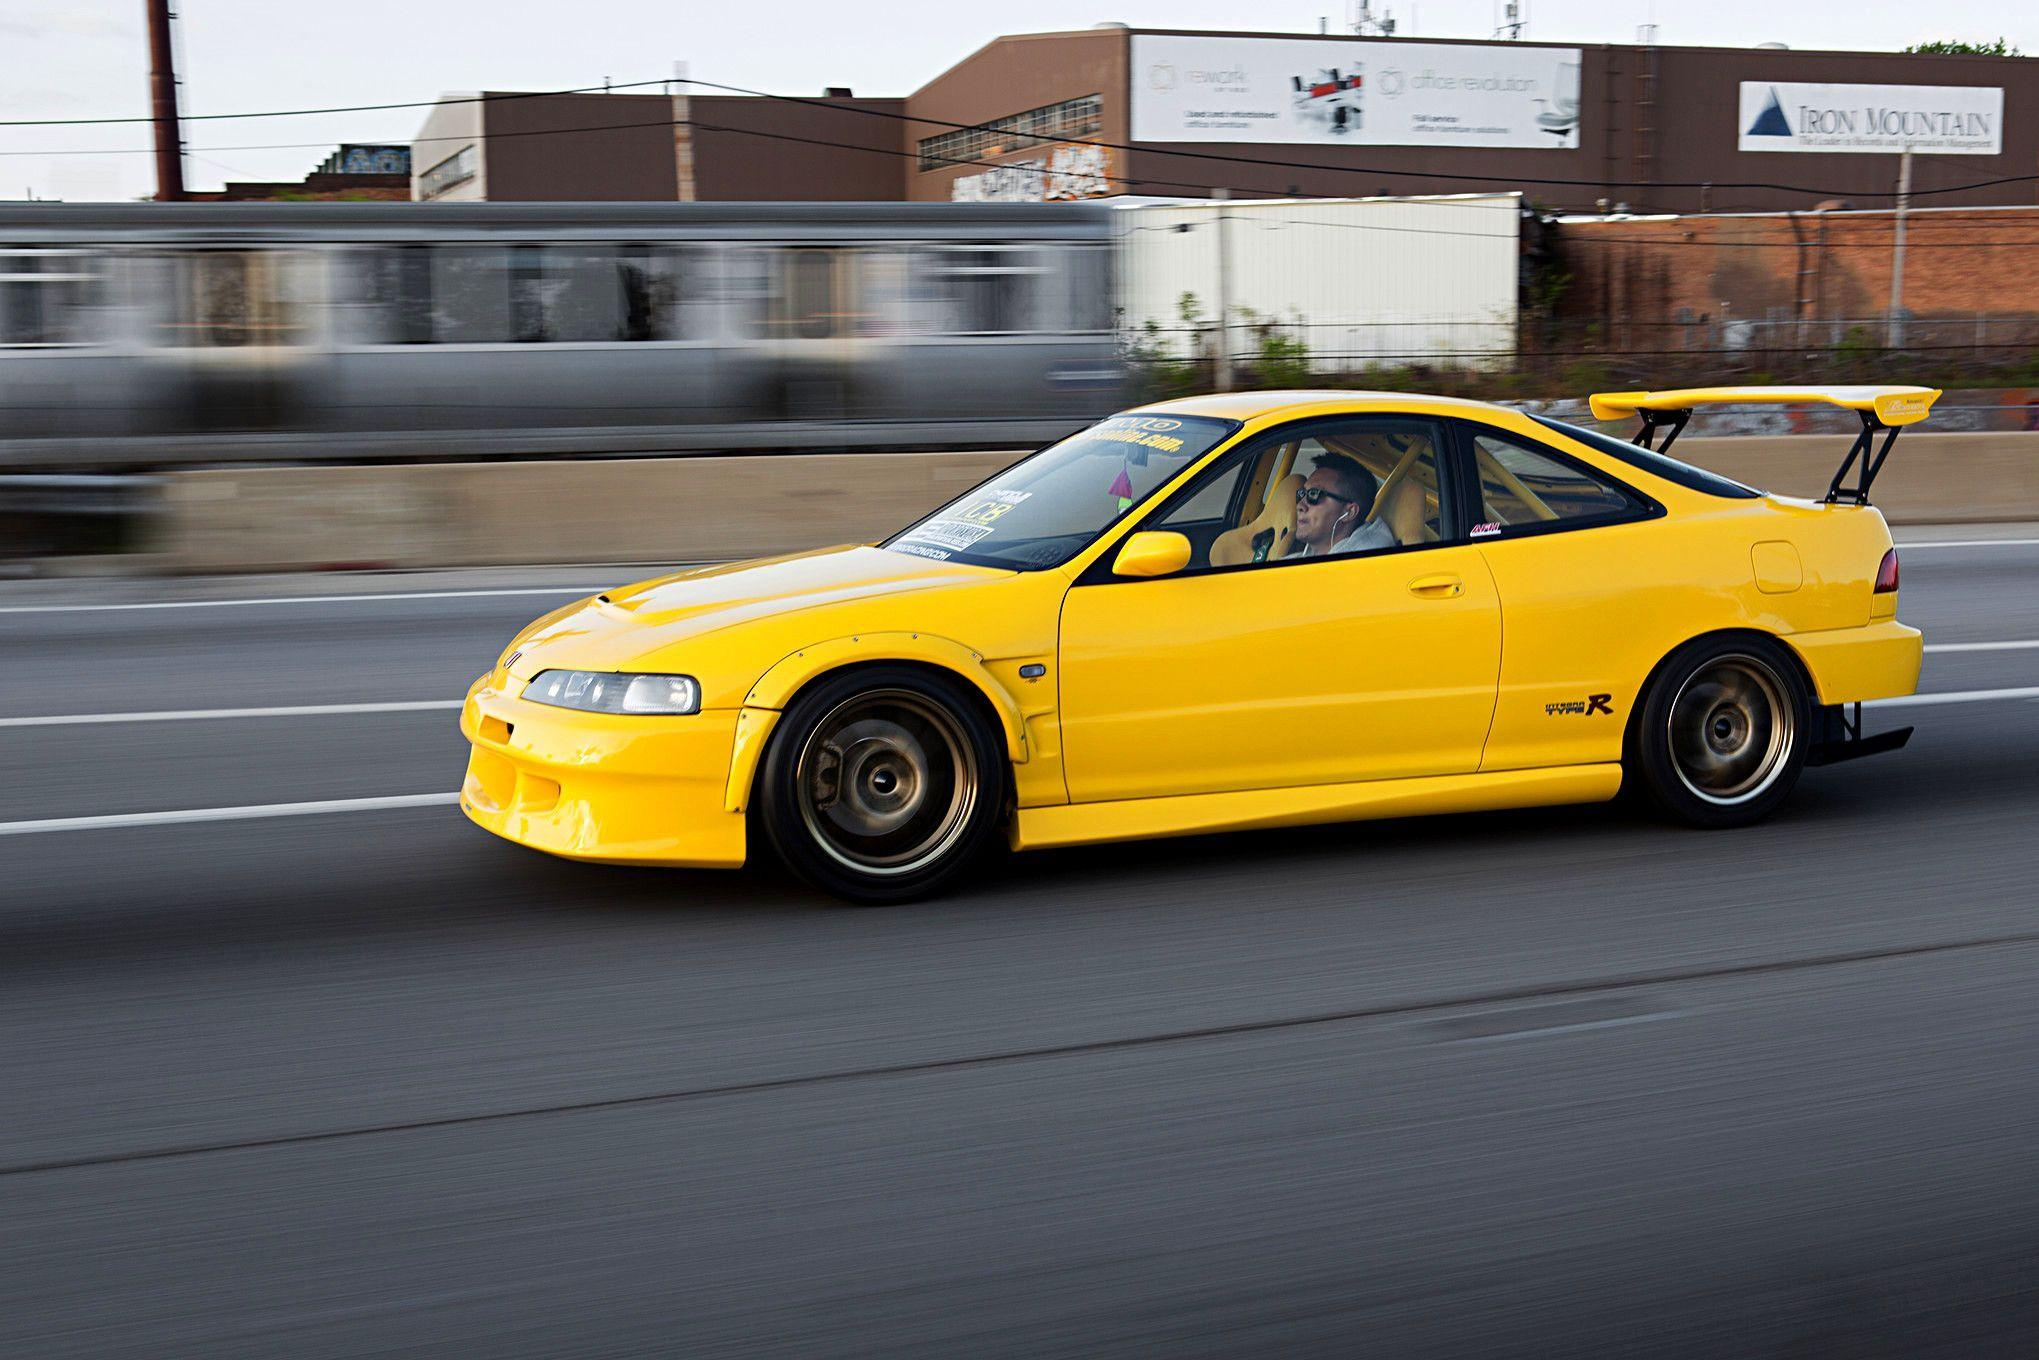 Chen Huang's 2000 Acura Integra Type R Photo & Image Gallery